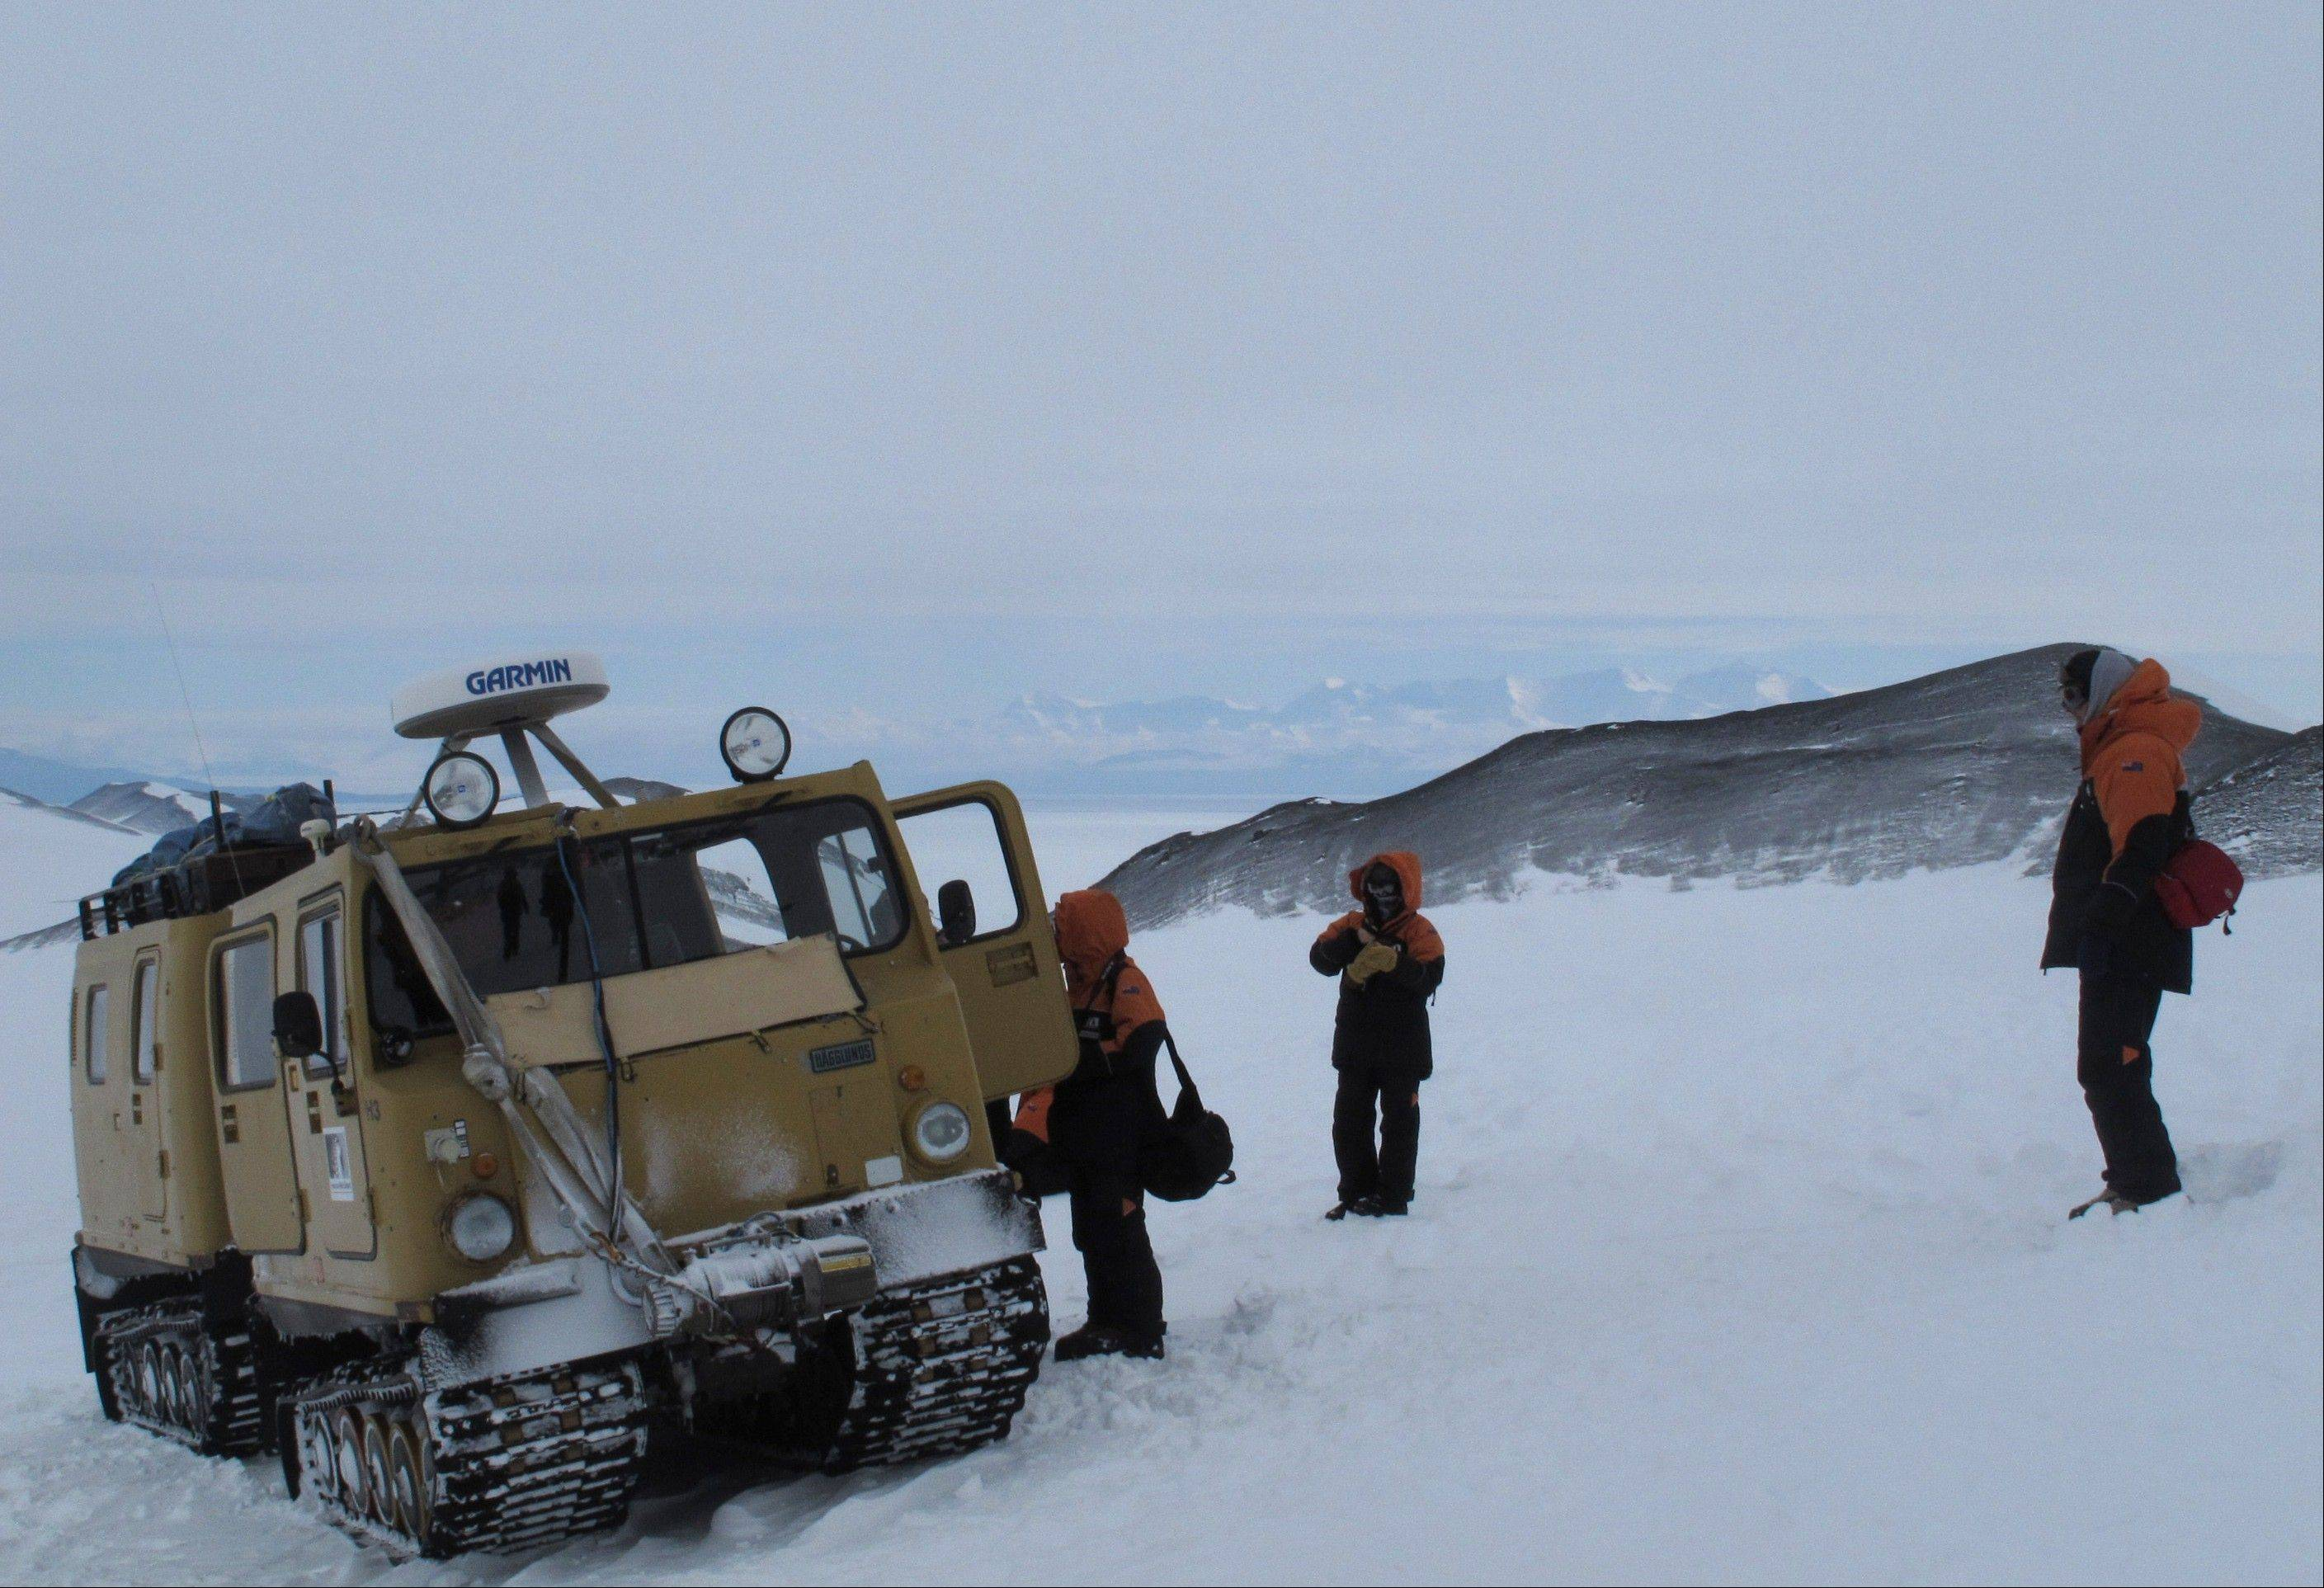 Sightseers board an over-snow vehicle on Hut Point Peninsula of Ross Island in Antarctica. Tourism in Antarctica is rebounding and it's not just retirees watching penguins from the deck of a ship.